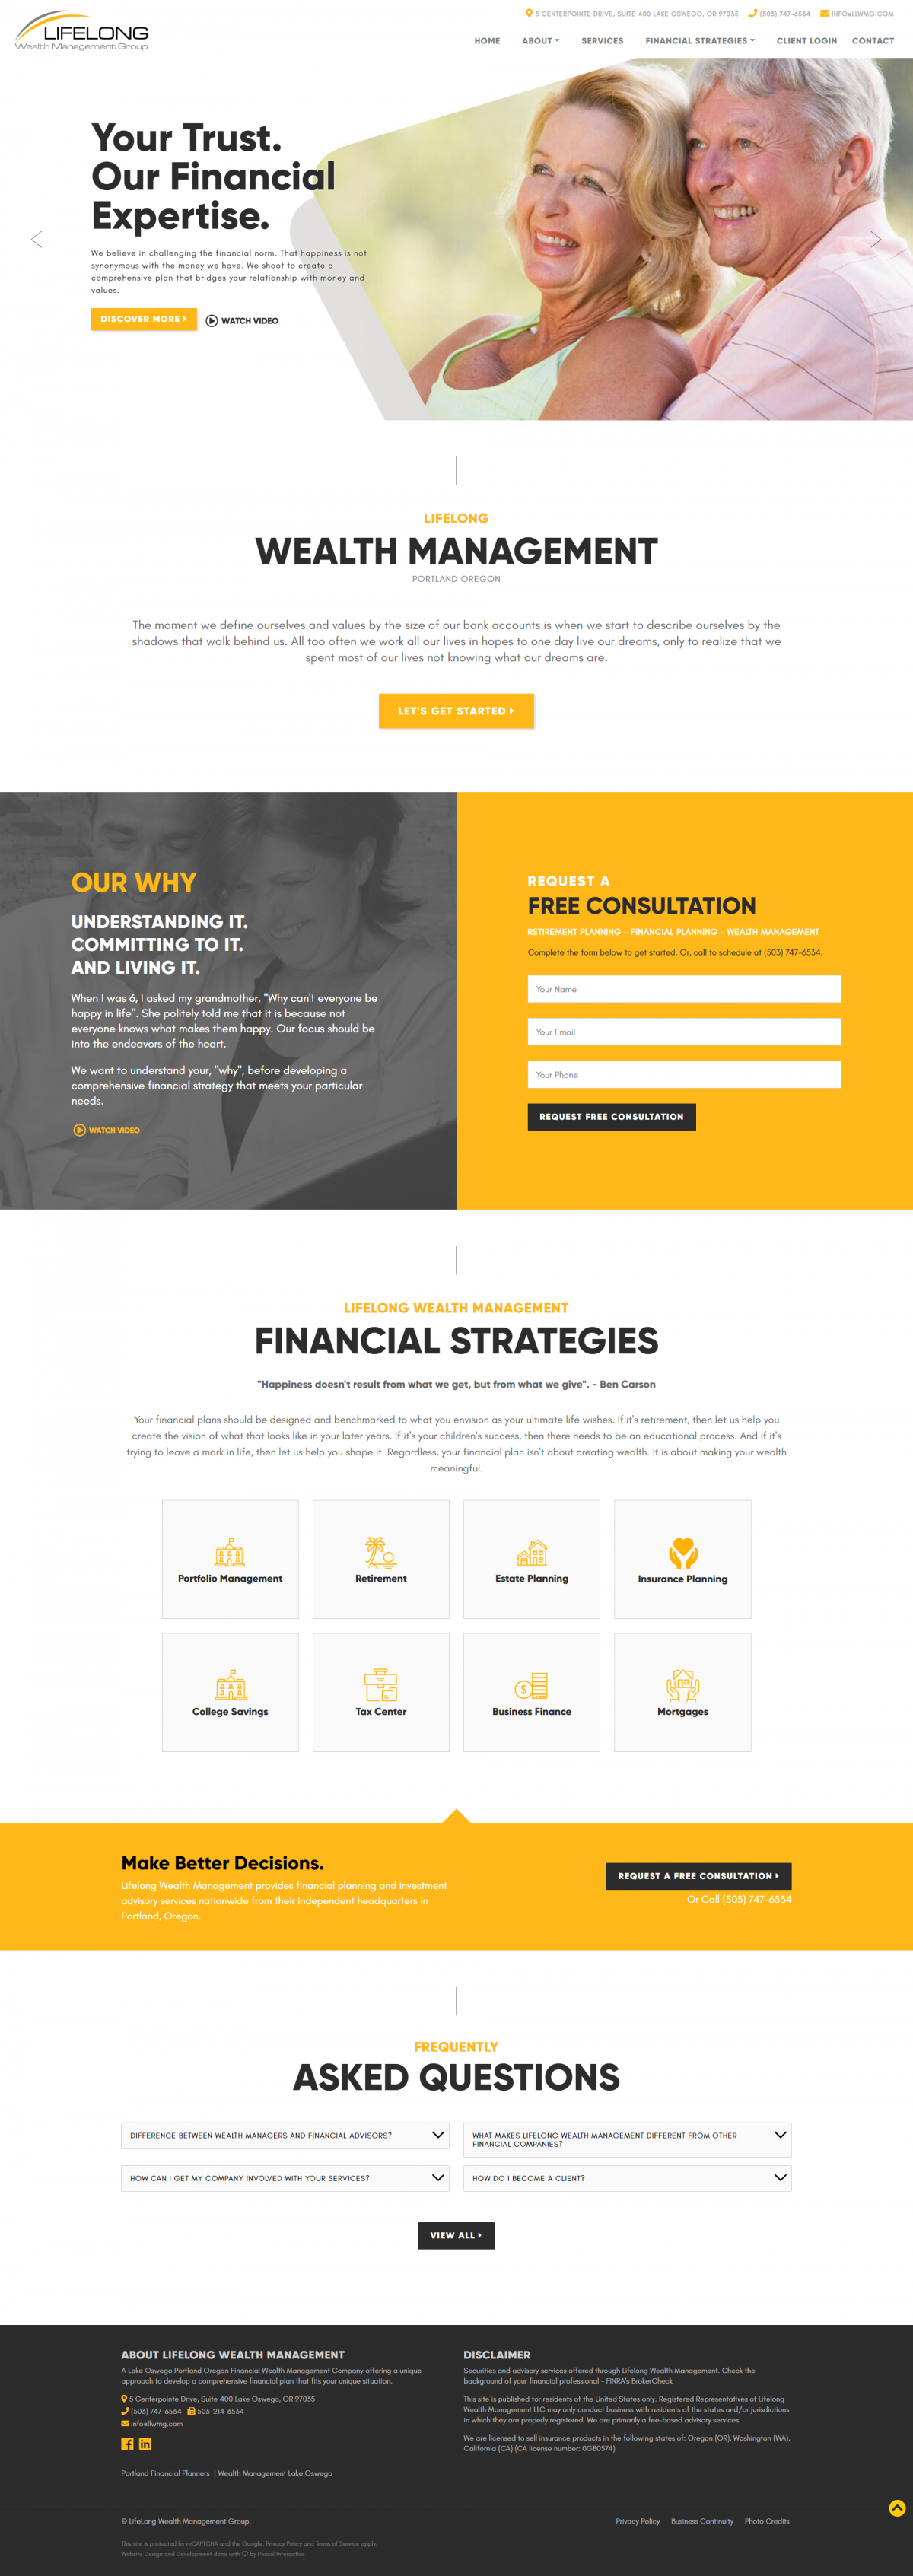 Lifelong Wealth Management Group Website Mockup